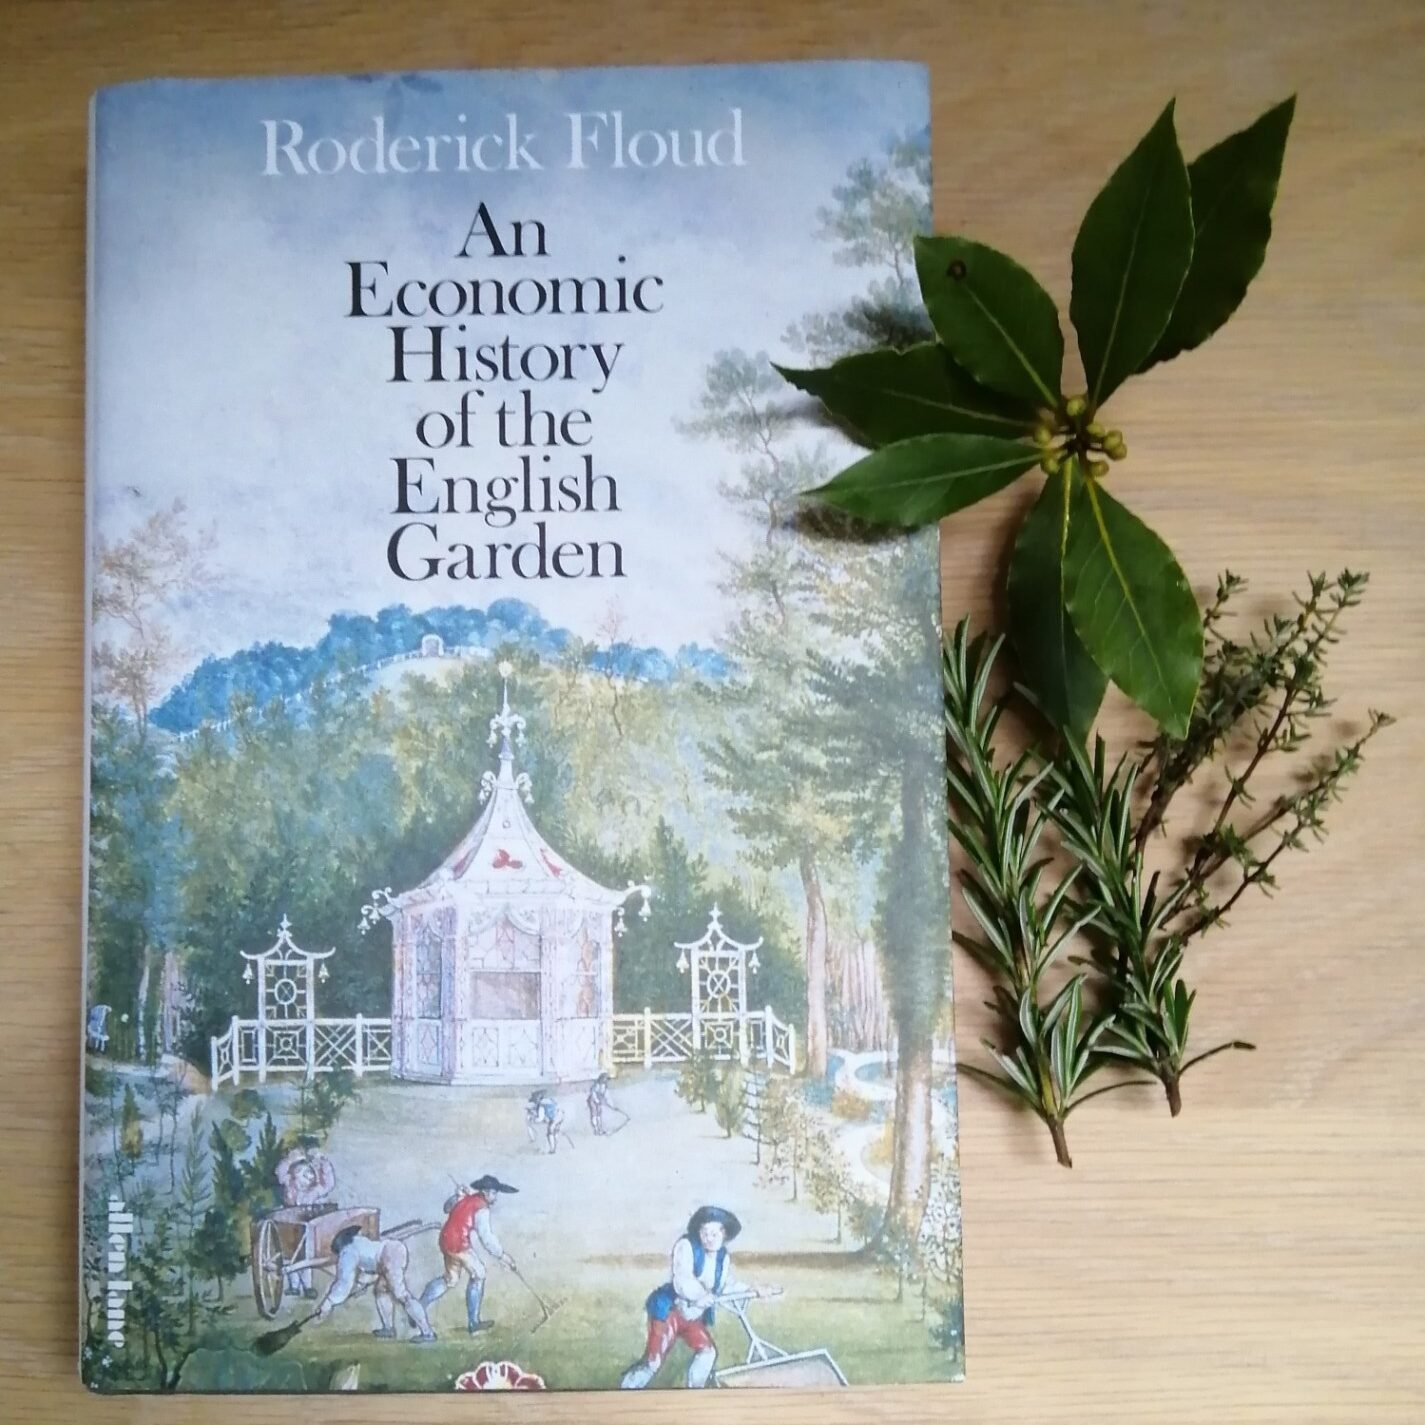 An Economic History of the English Garden by Roderick Floud_1499x1616